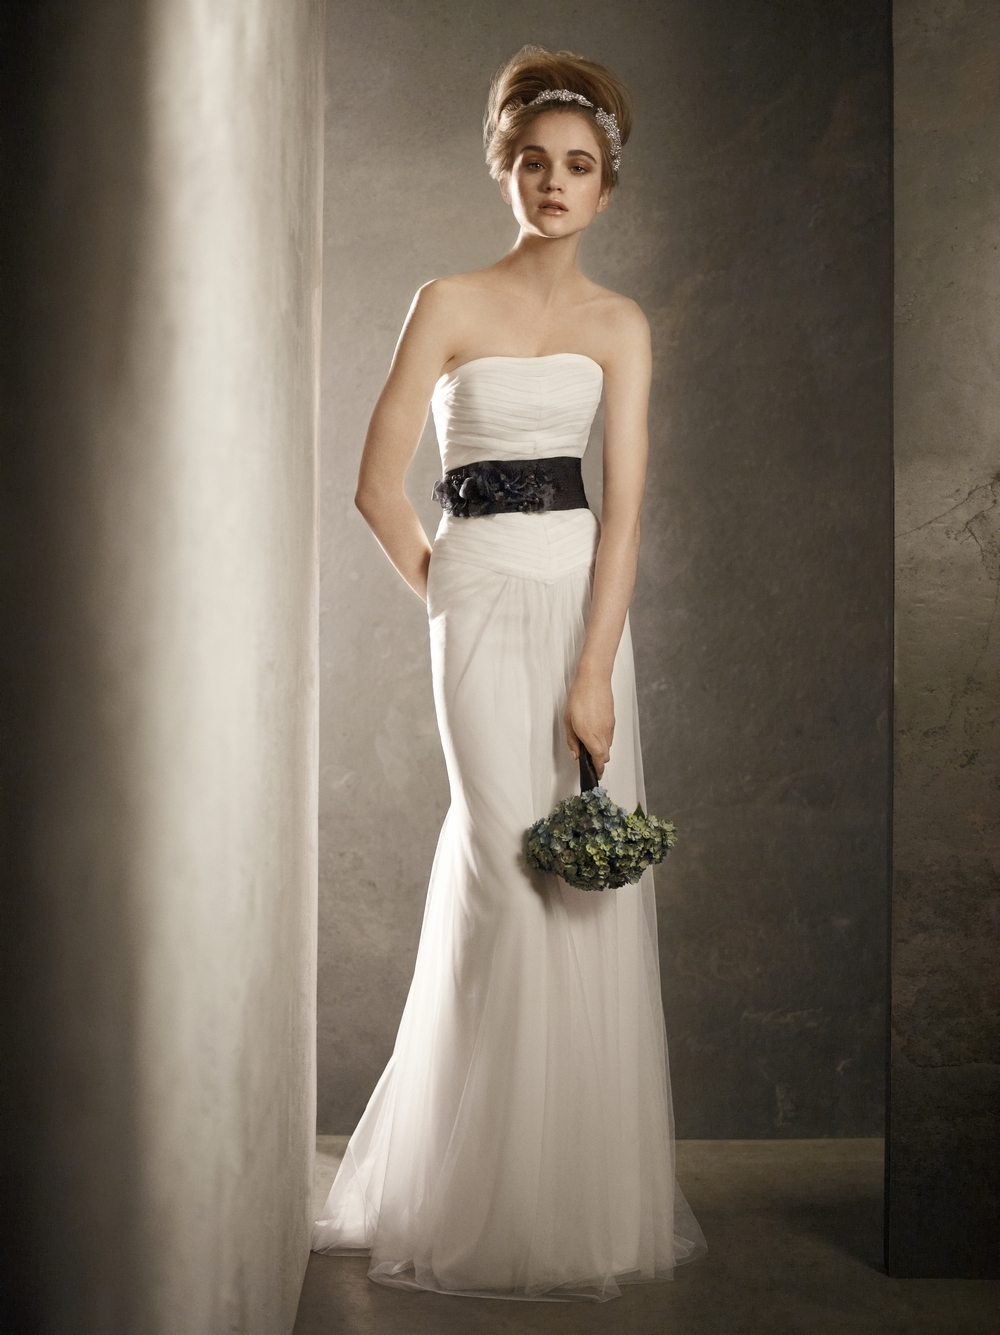 Strapless White Modified Mermaid 2011 Wedding Dress With Black